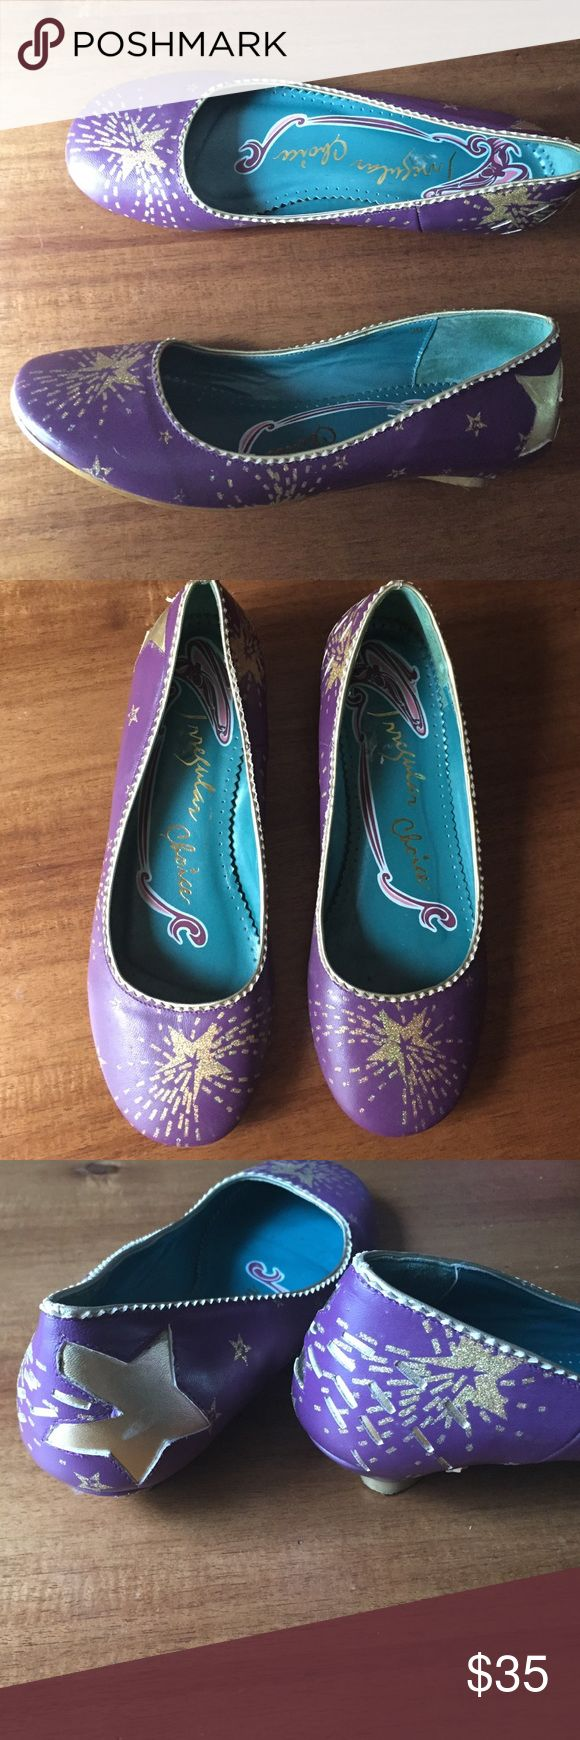 Irregular choice shootingstar flats, purple & gold These are a Euro size 39 ( they barley fit me and I am an 8.5-9 ) I bought them for myself but they would be more comfortable on a size 8 foot.  Really cute EUC! Irregular Choice is a European brand that makes limited edition shoes, so if you see a pair you like snatch them up because you will prob not find them again! Irregular Choice Shoes Flats & Loafers